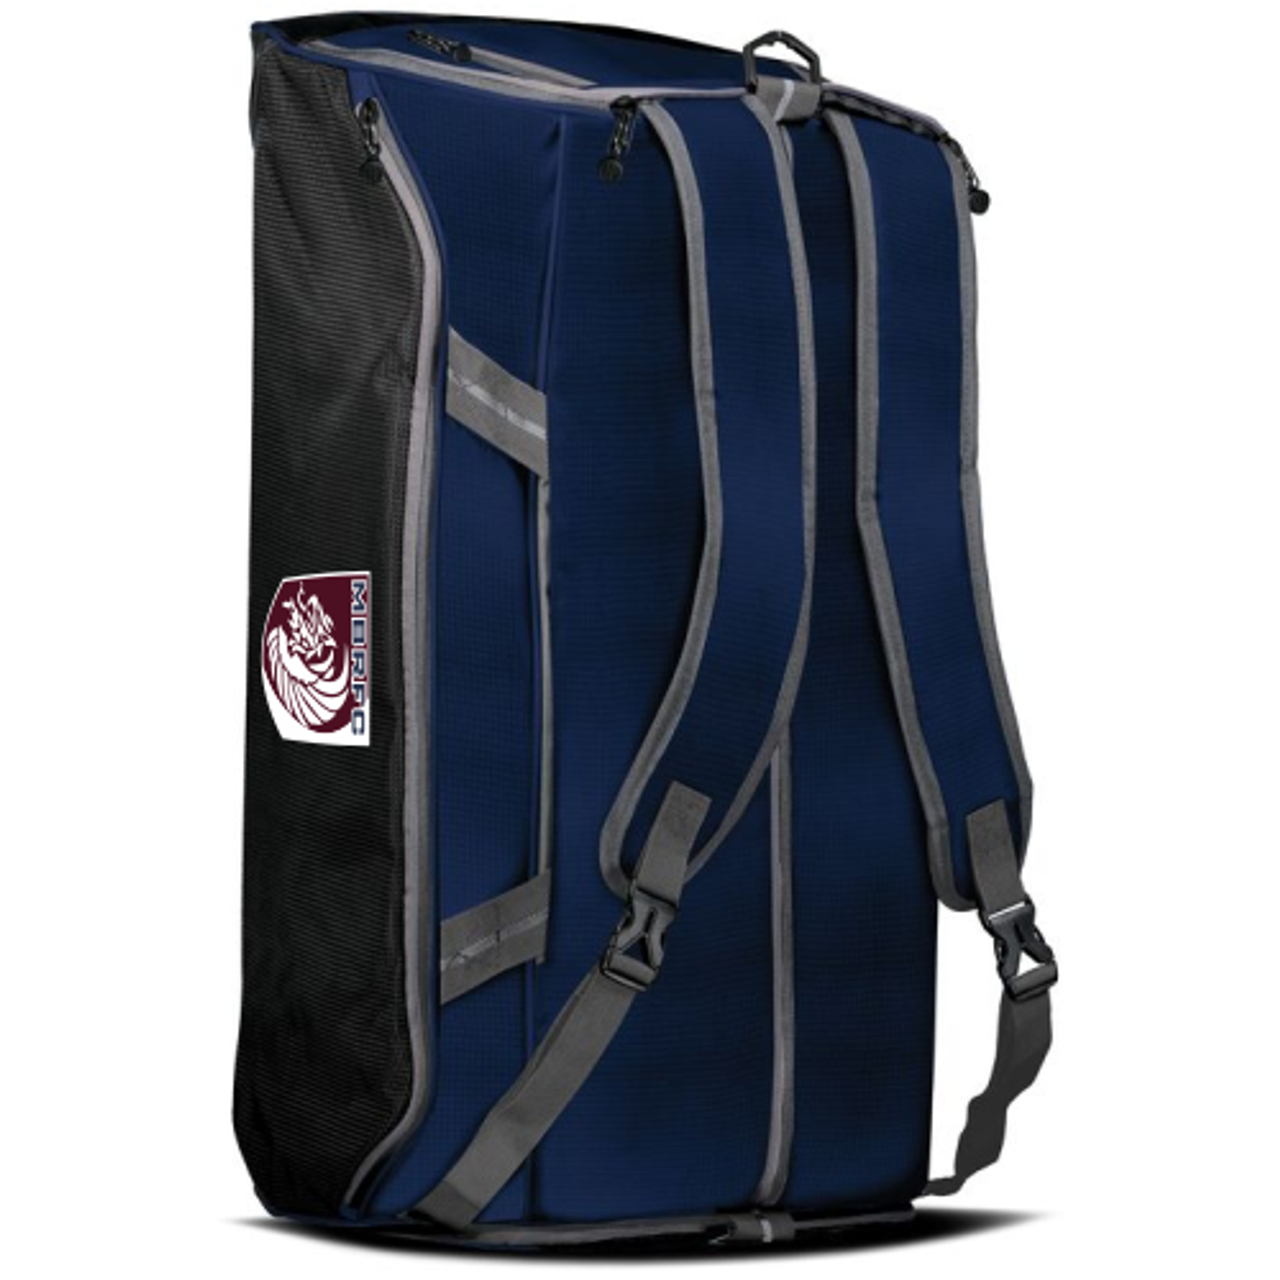 MB Rugby Backpack Duffel